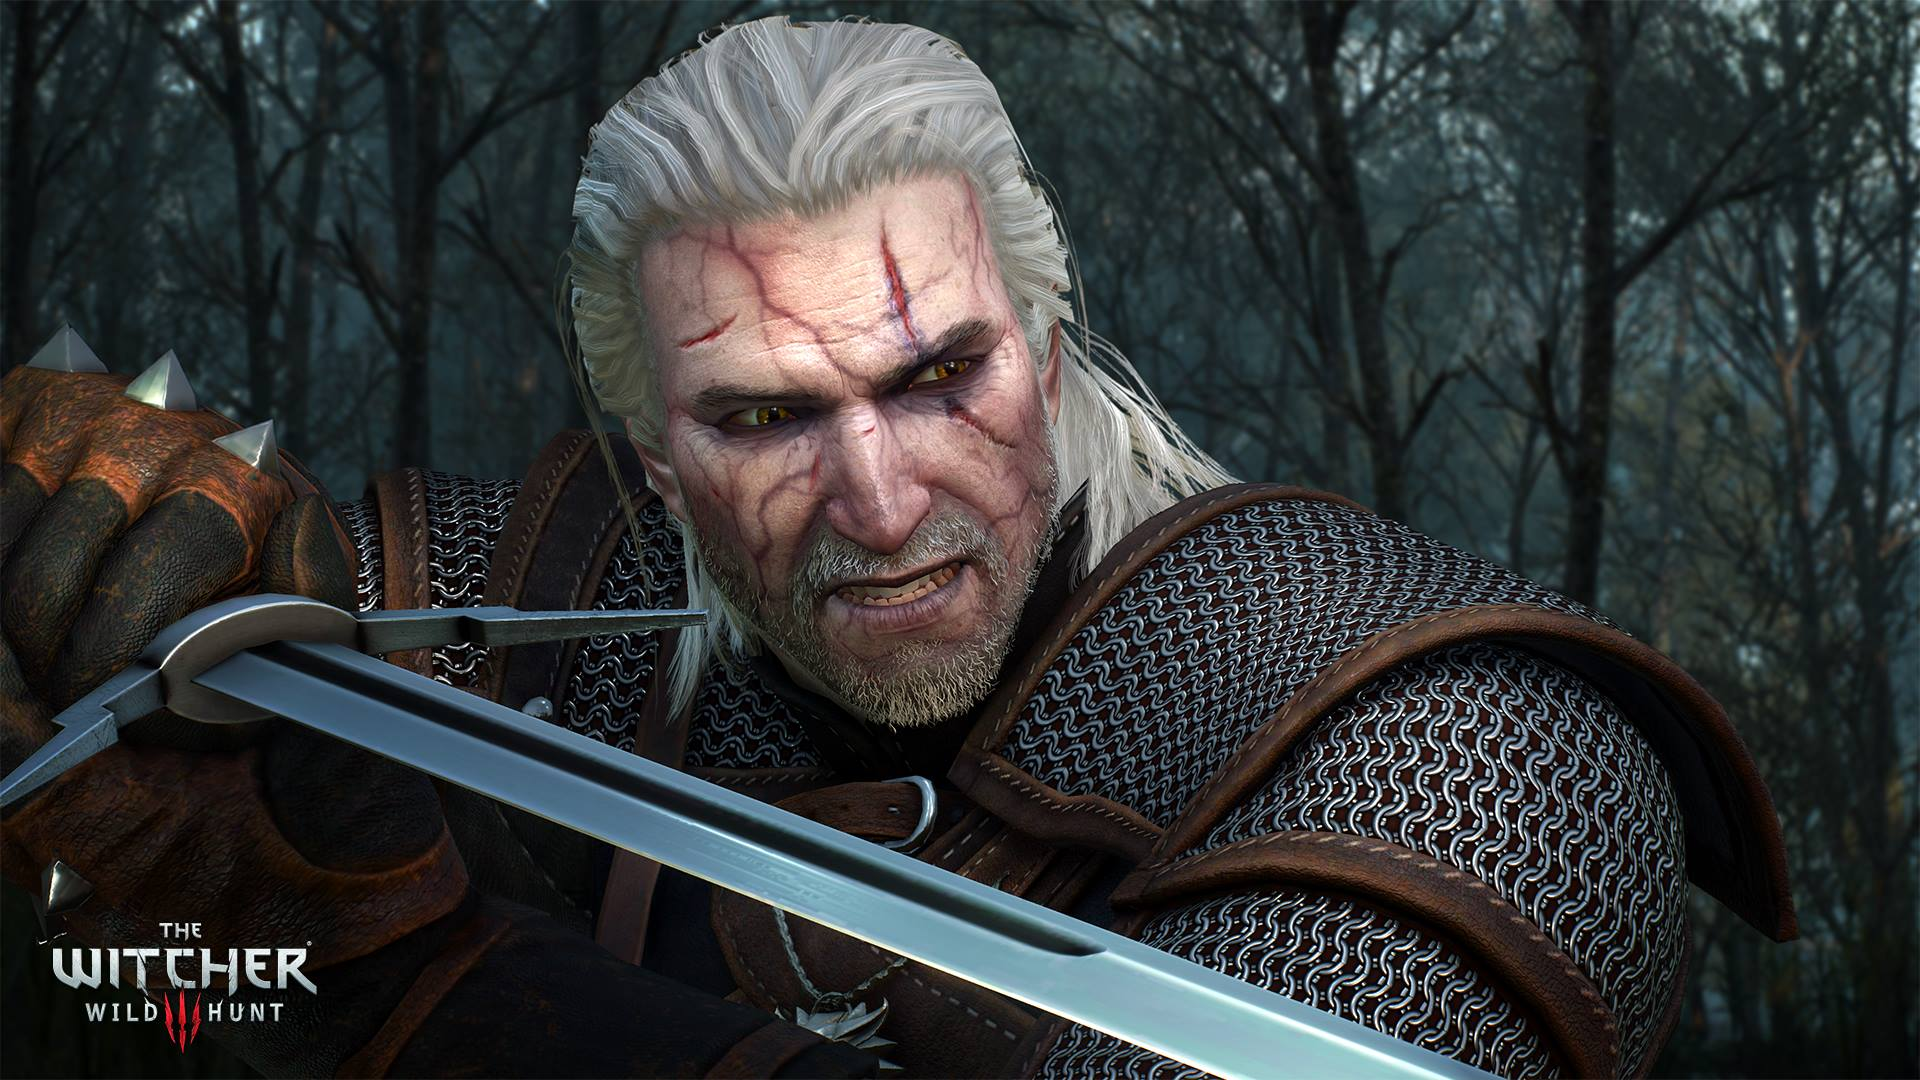 The Witcher 3 Players are Increased and wants The Witcher 4